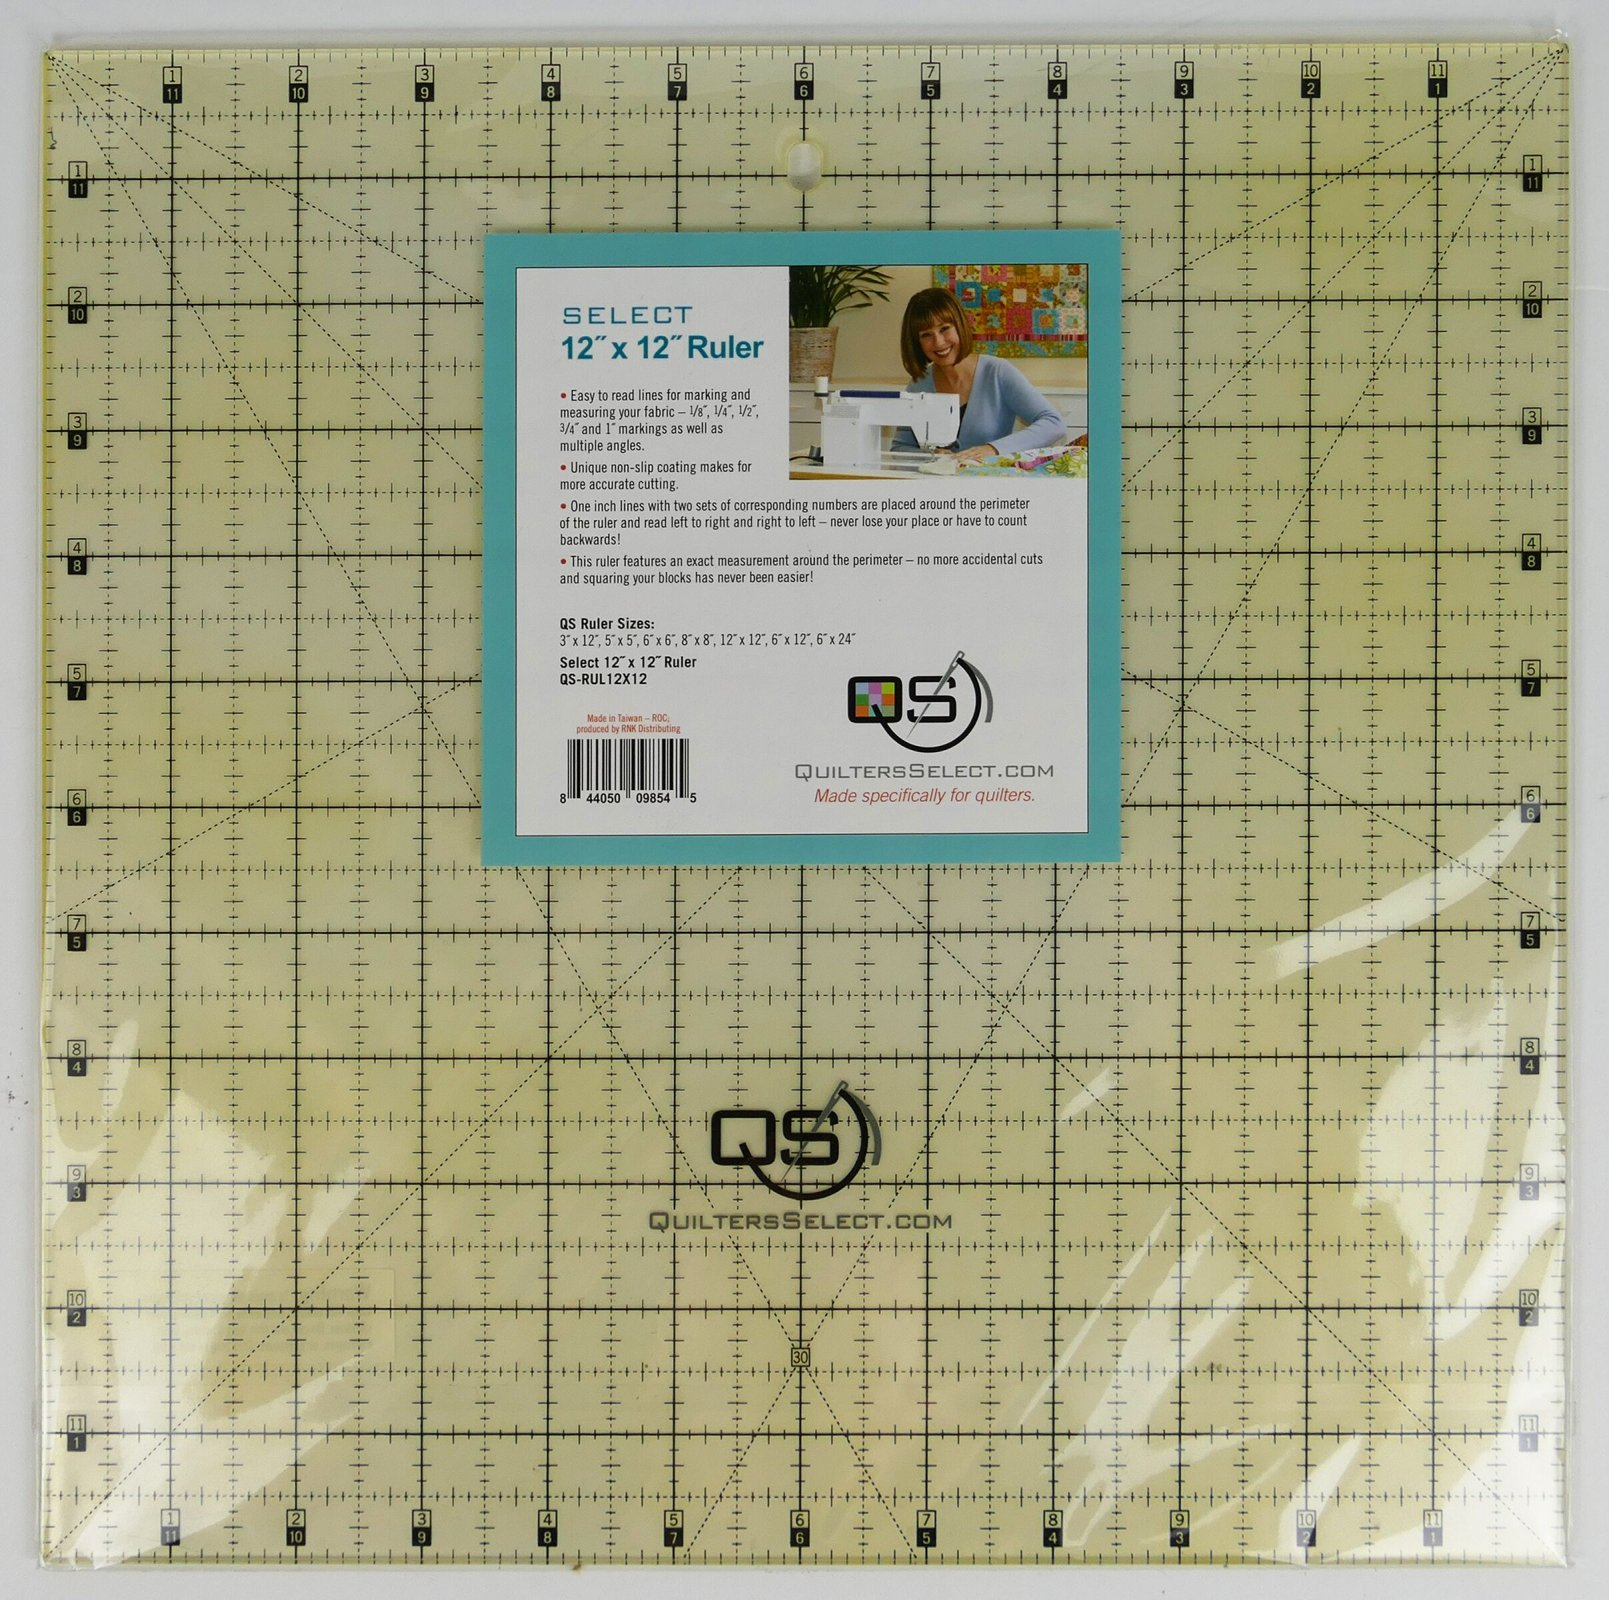 Quilters Select 12 x 12 Ruler